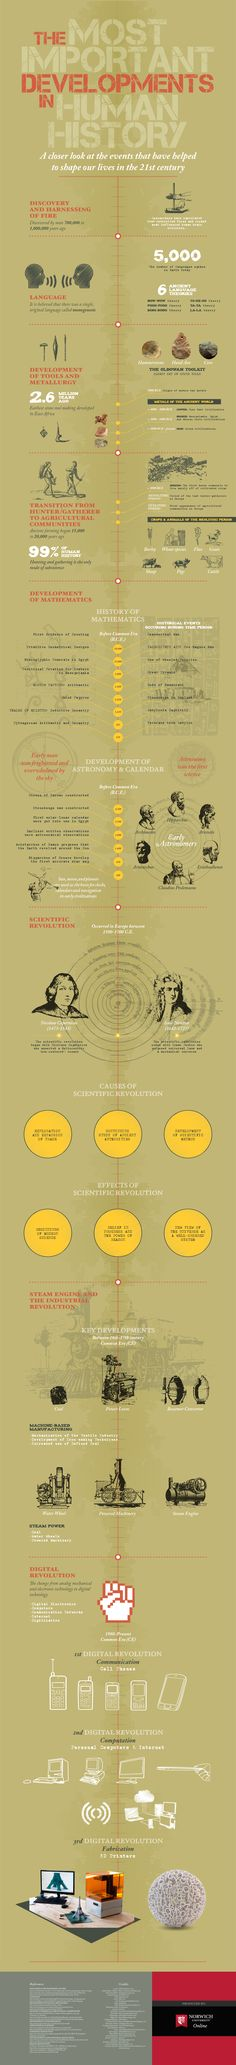 Infographic: The Most Important Developments In Human History